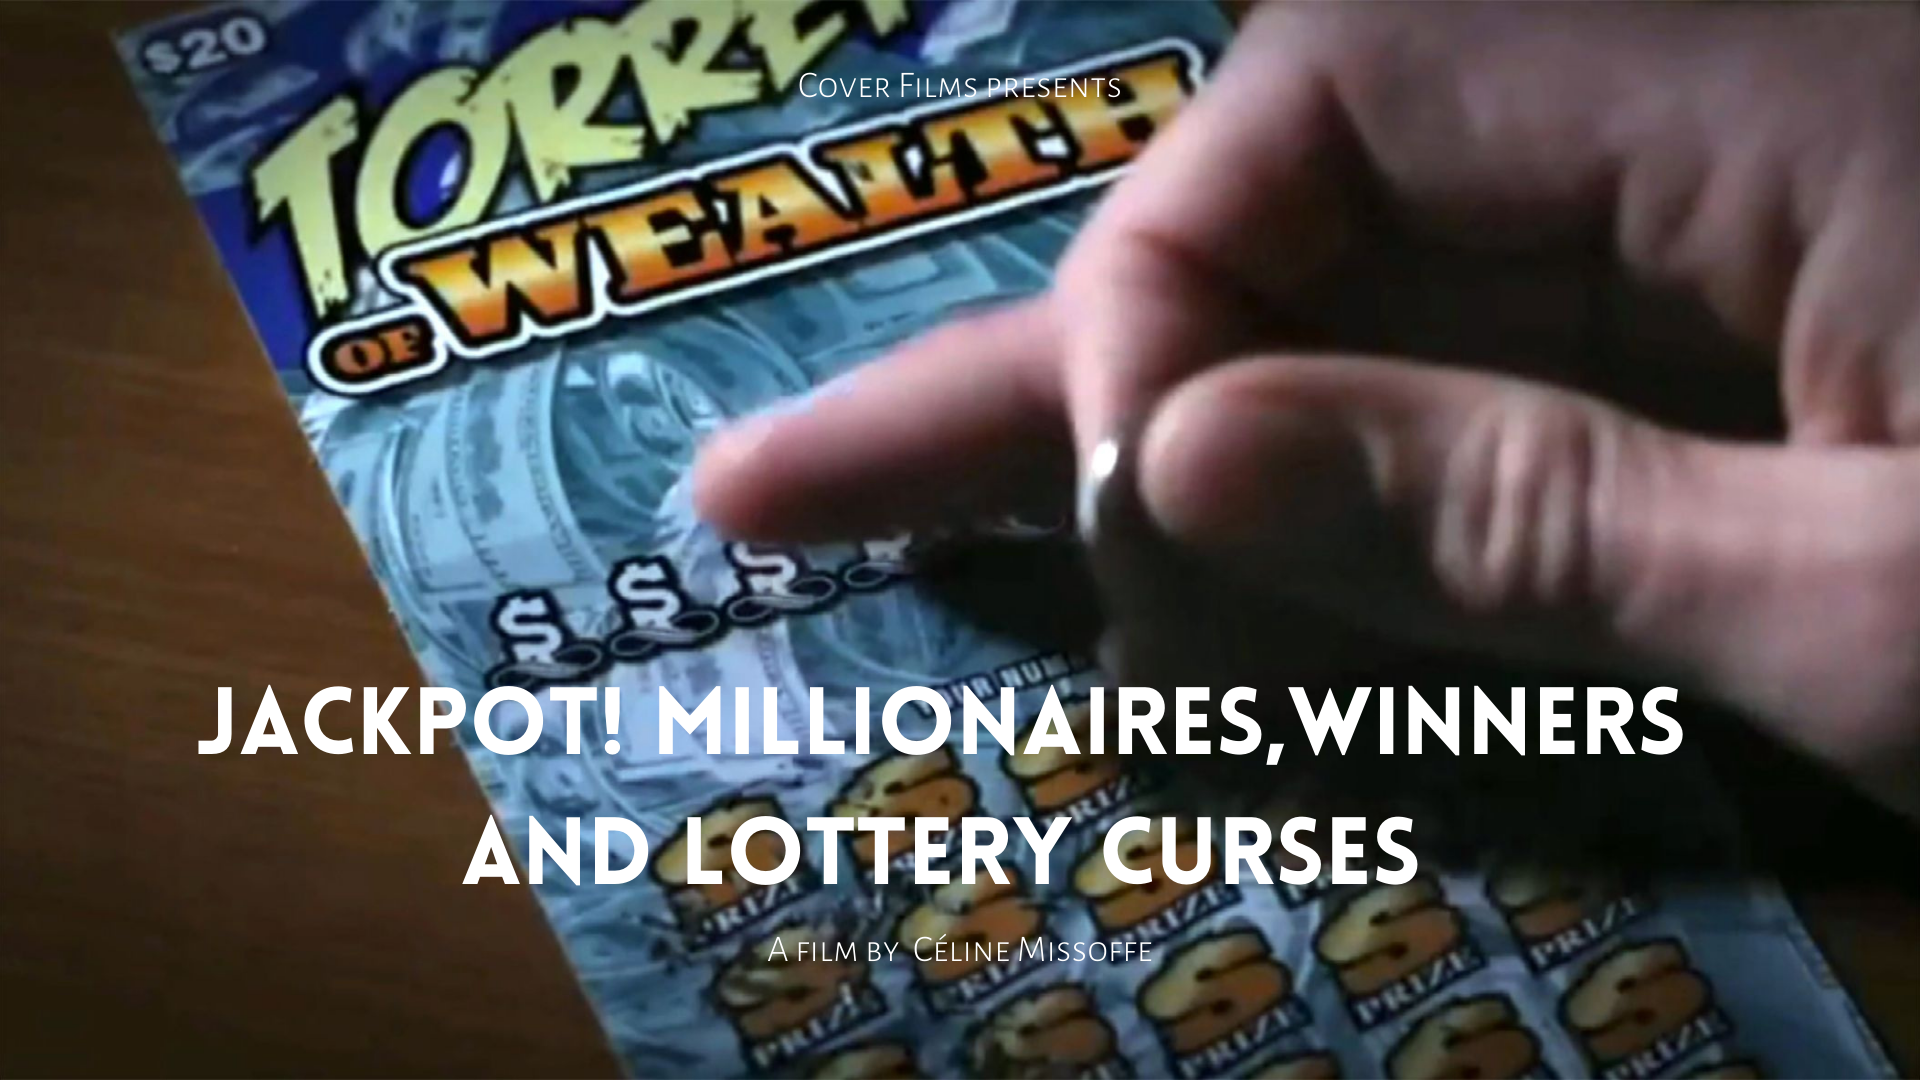 Jackpot! Millionaires, Winners and Lottery Curses